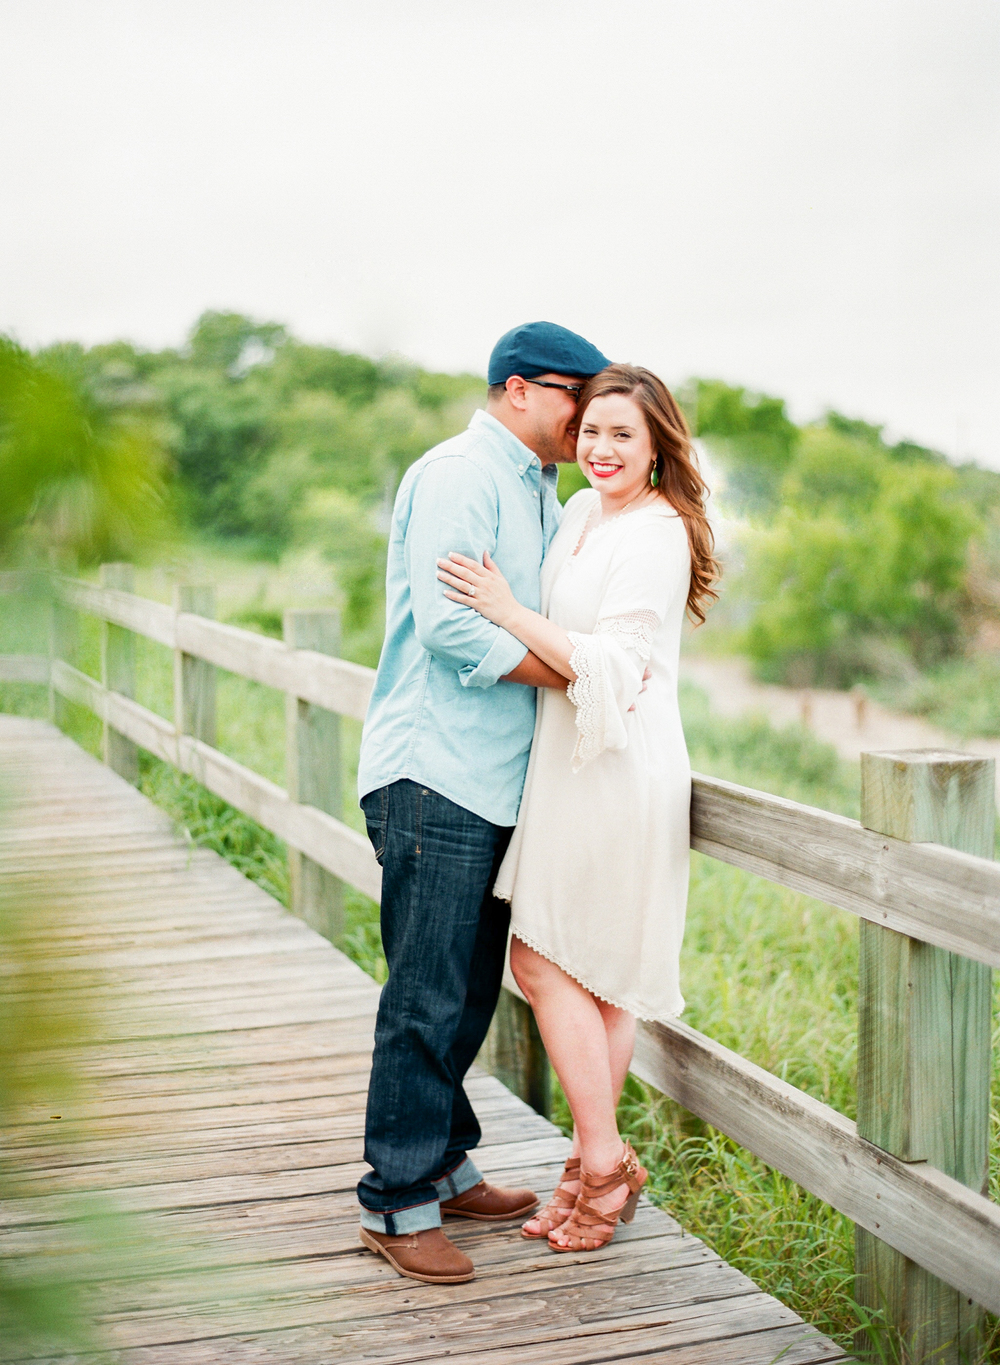 Austin-Texas-Engagement-Photographer-Kat-26.jpg